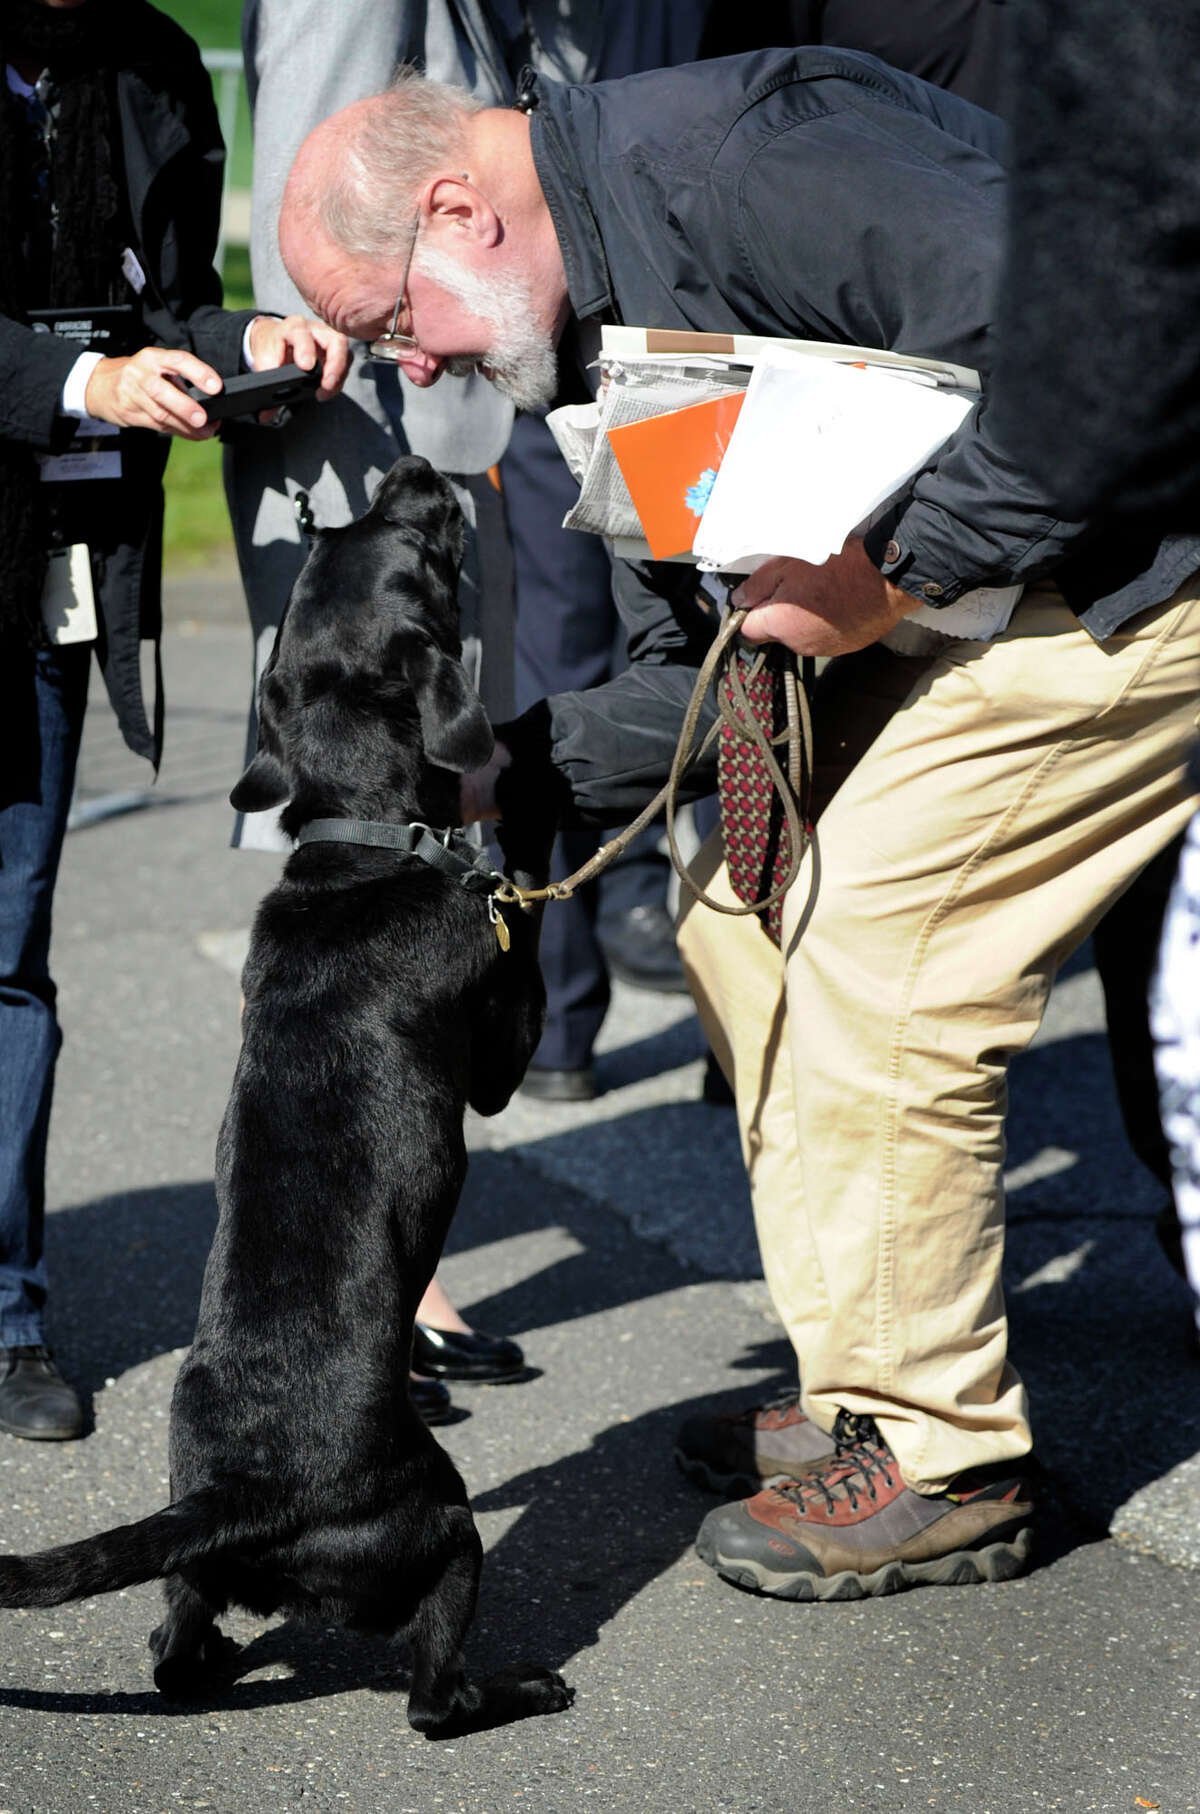 News-Times reporter Bob Miller, makes friends with a contraband-sniffing dog before a sweep of media and their equipment. A large turn out of media turned up at Western Connecticut State University to cover a visit by the Dalai Lama Thursday, Oct. 18, 2012.